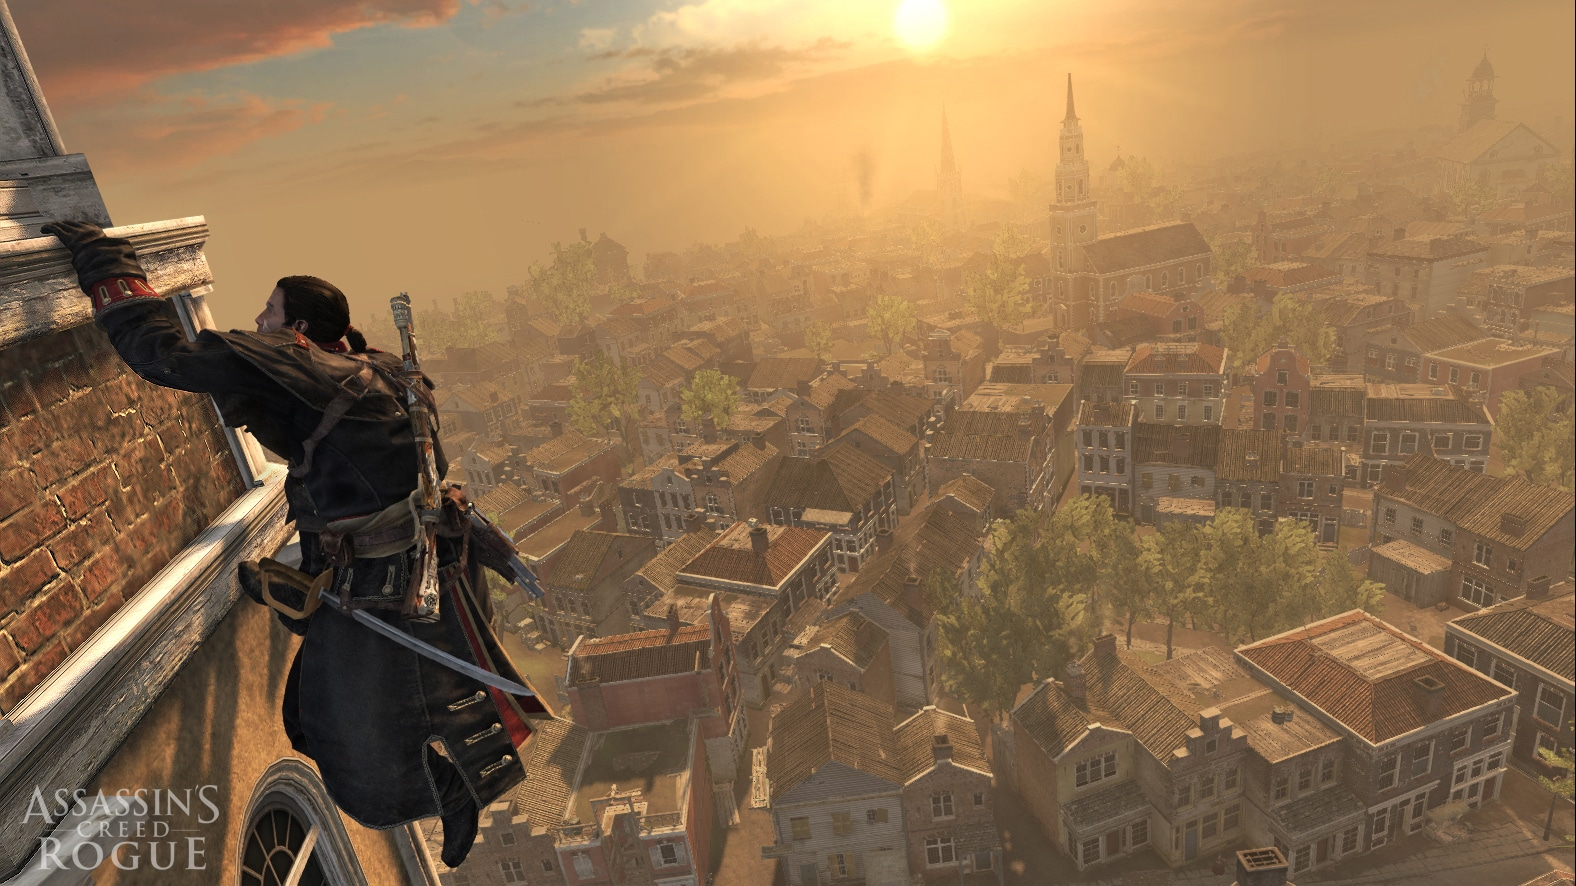 Assassins-Creed-Rogue-Screenshot-02